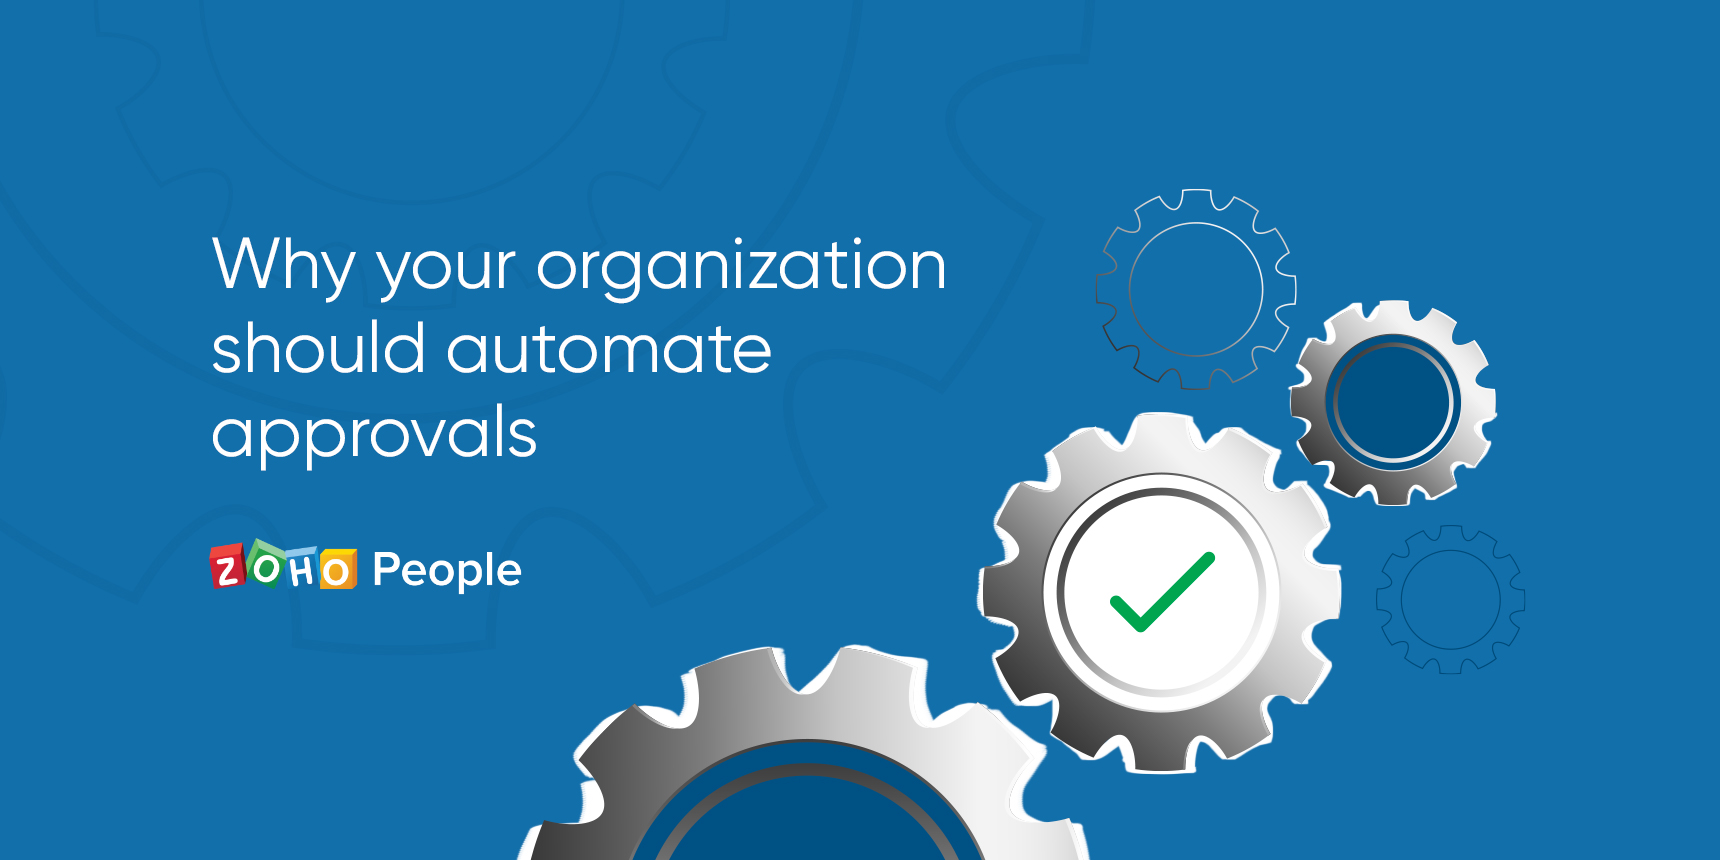 Why your organization should automate approvals